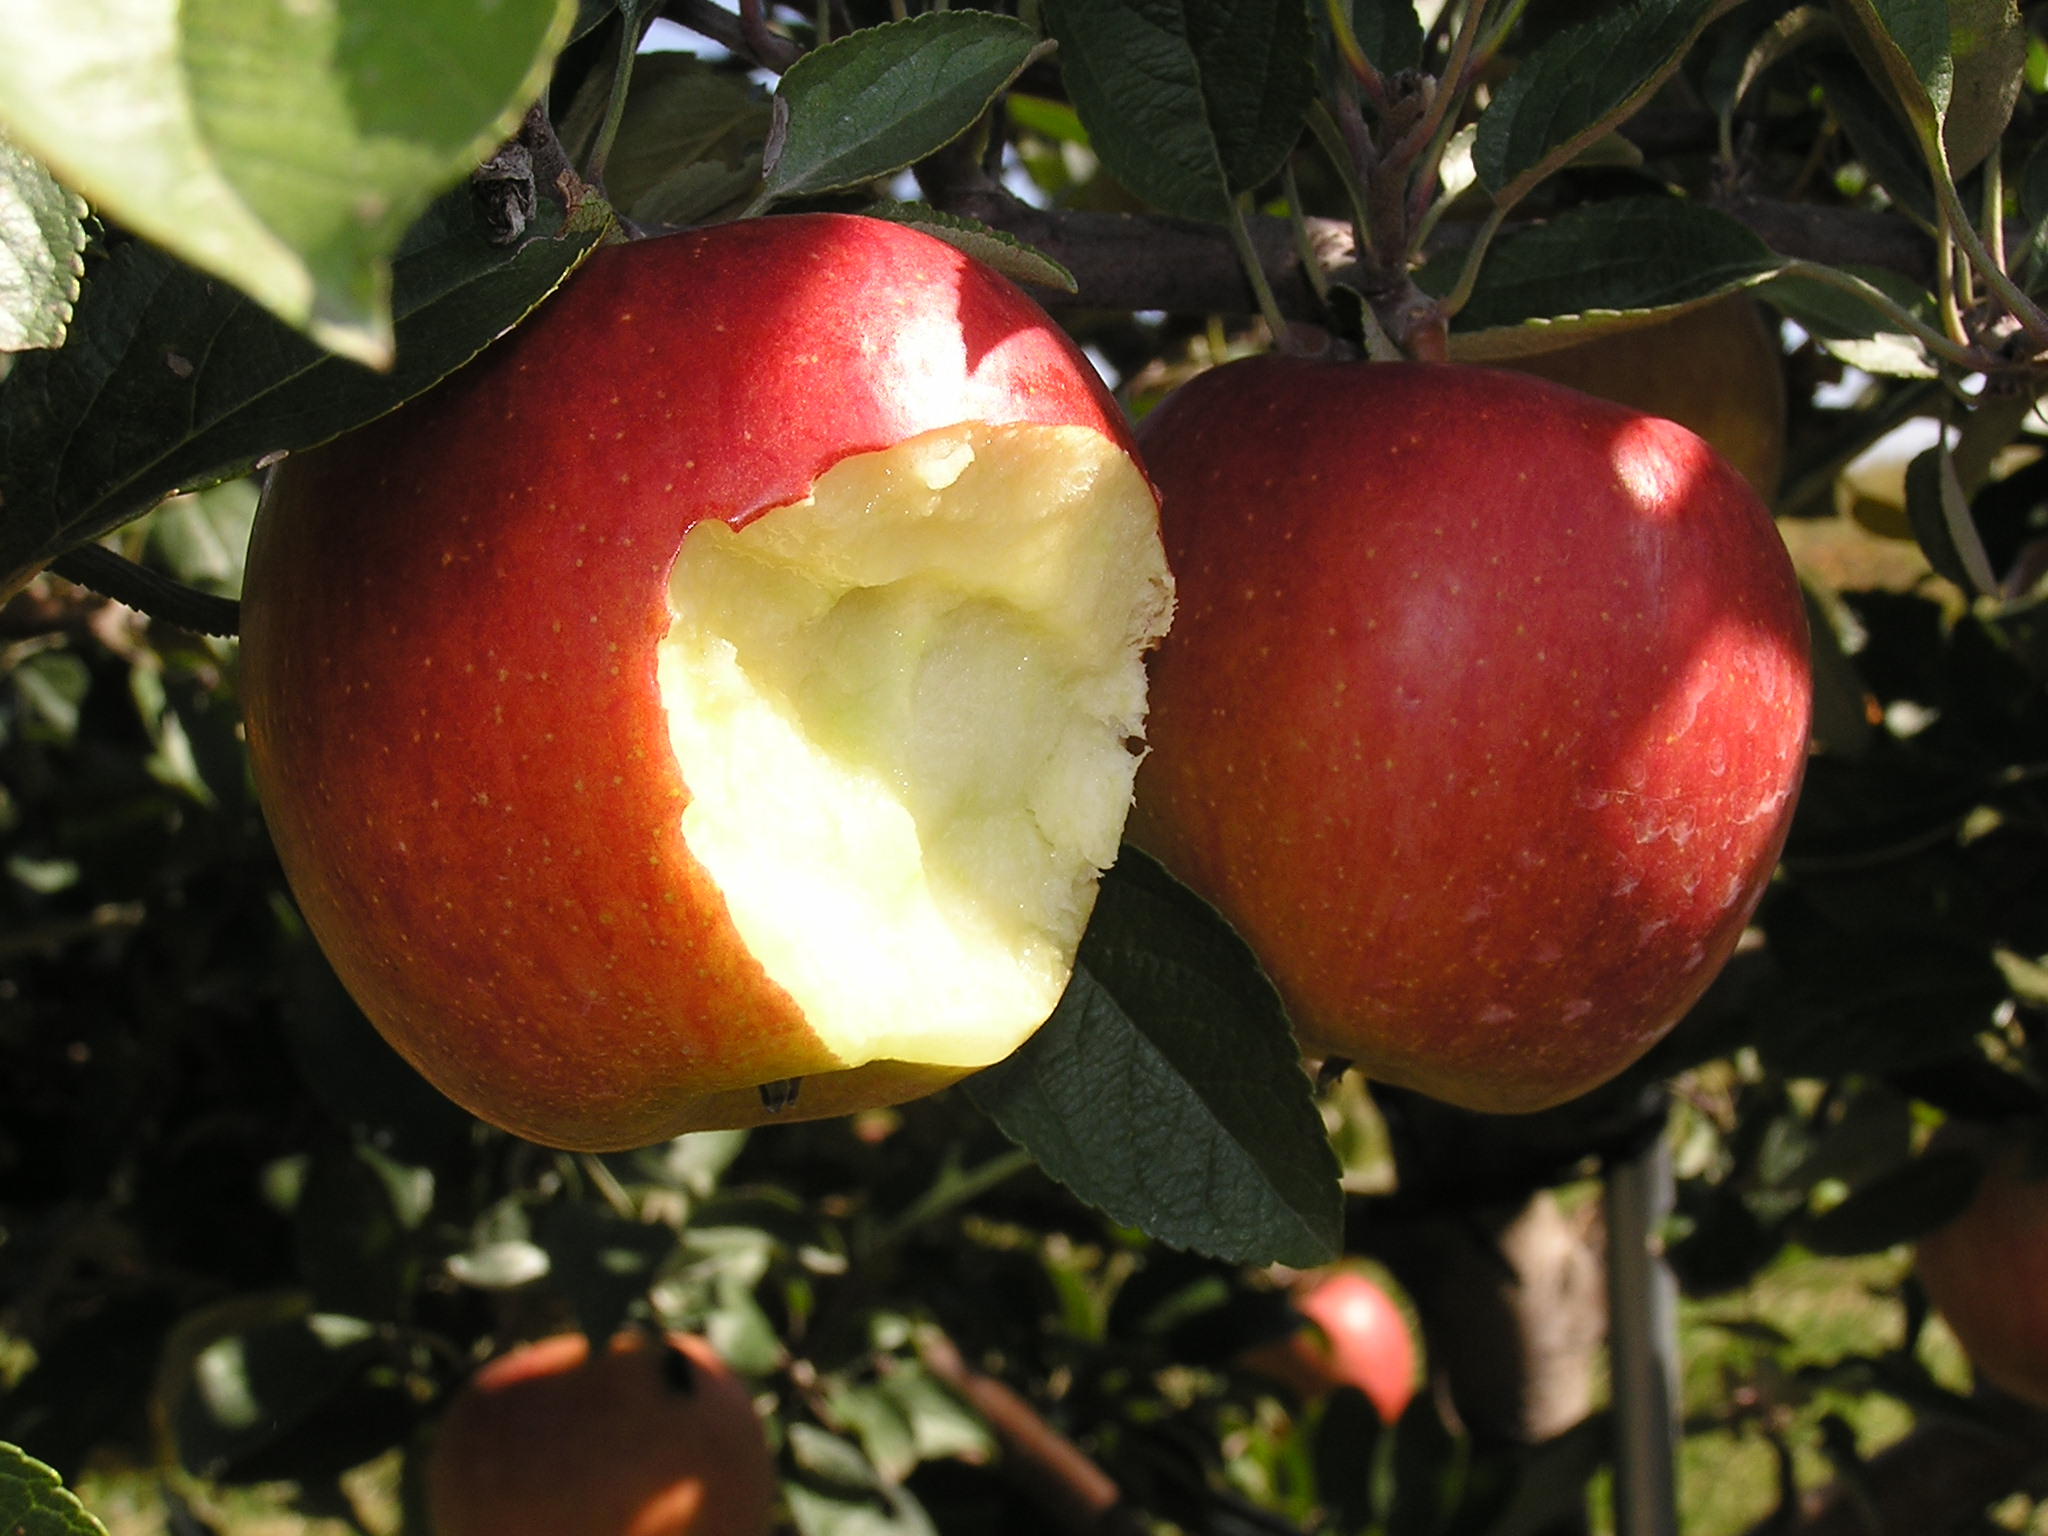 Two red apples hang from a branch. One apple has a few bites taken out of it.